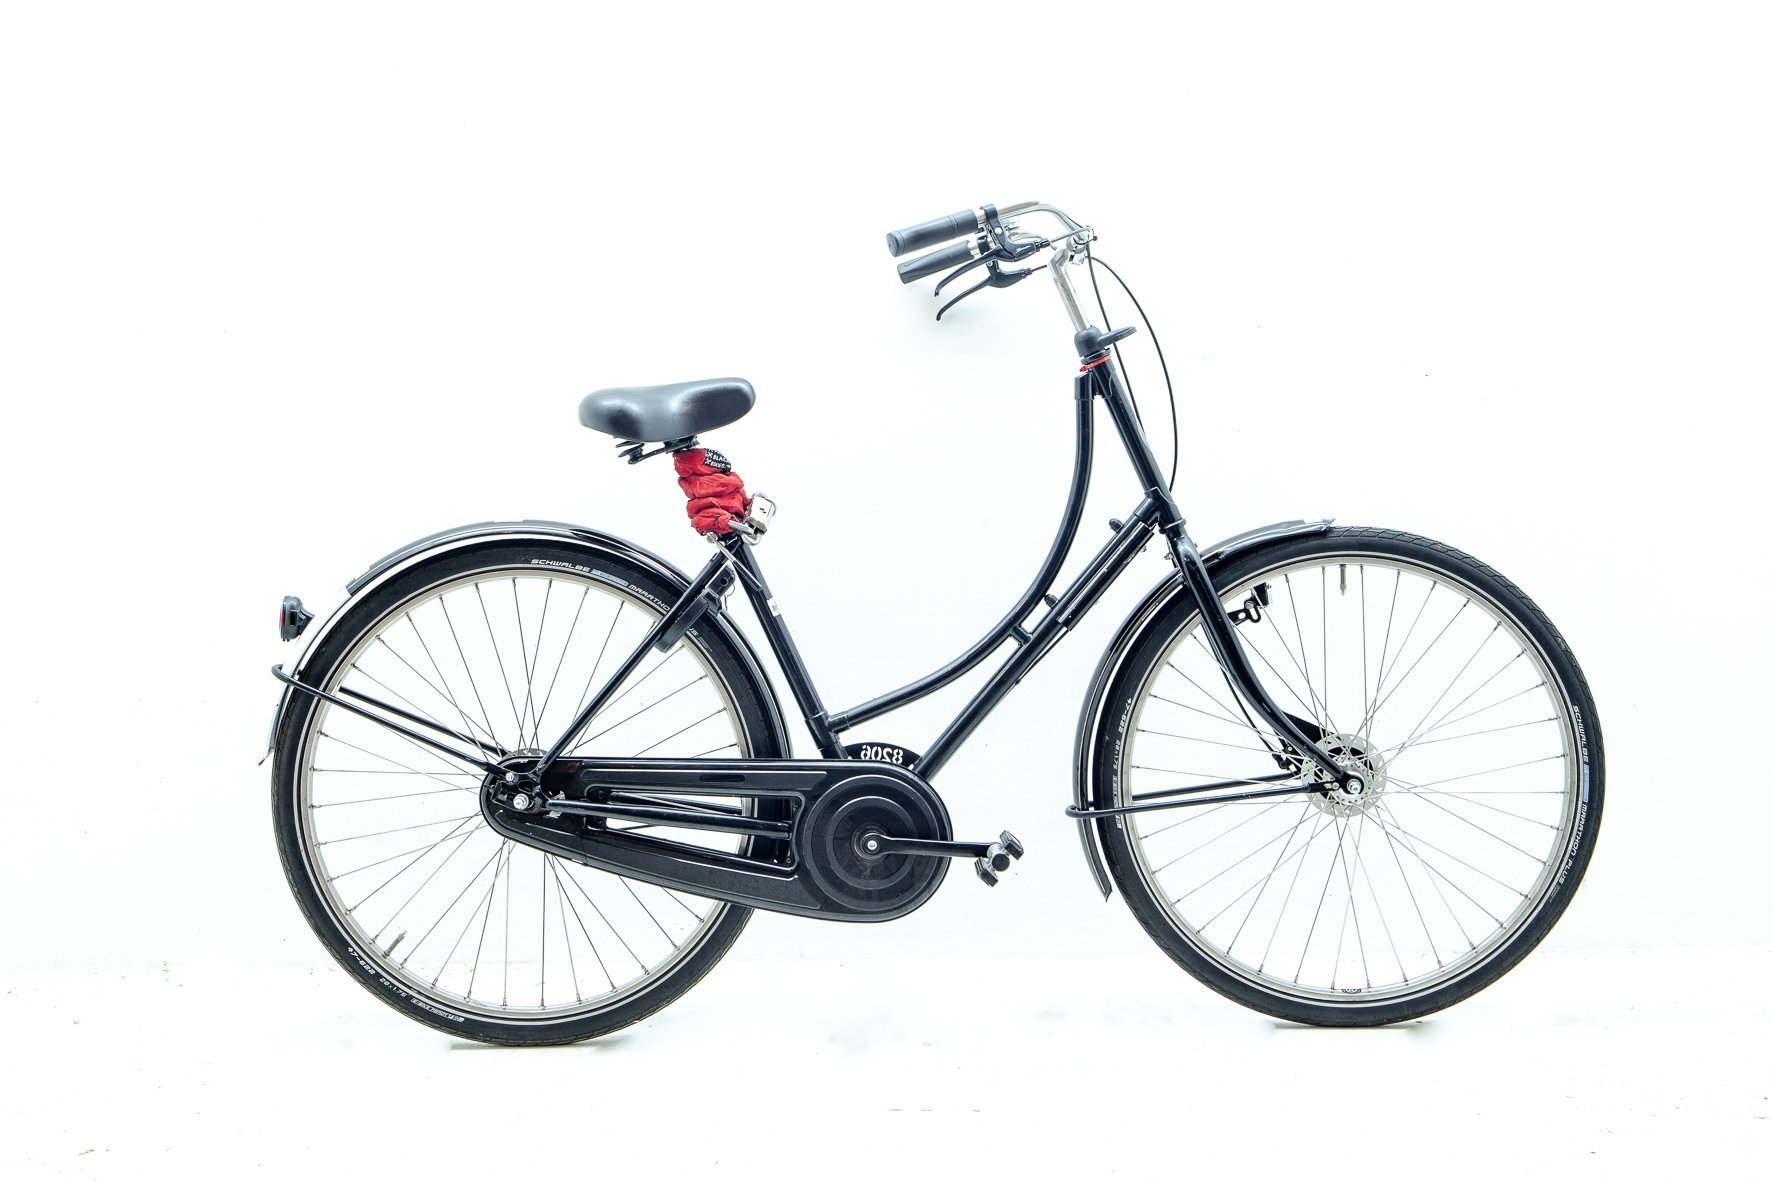 Handbrake rental bike